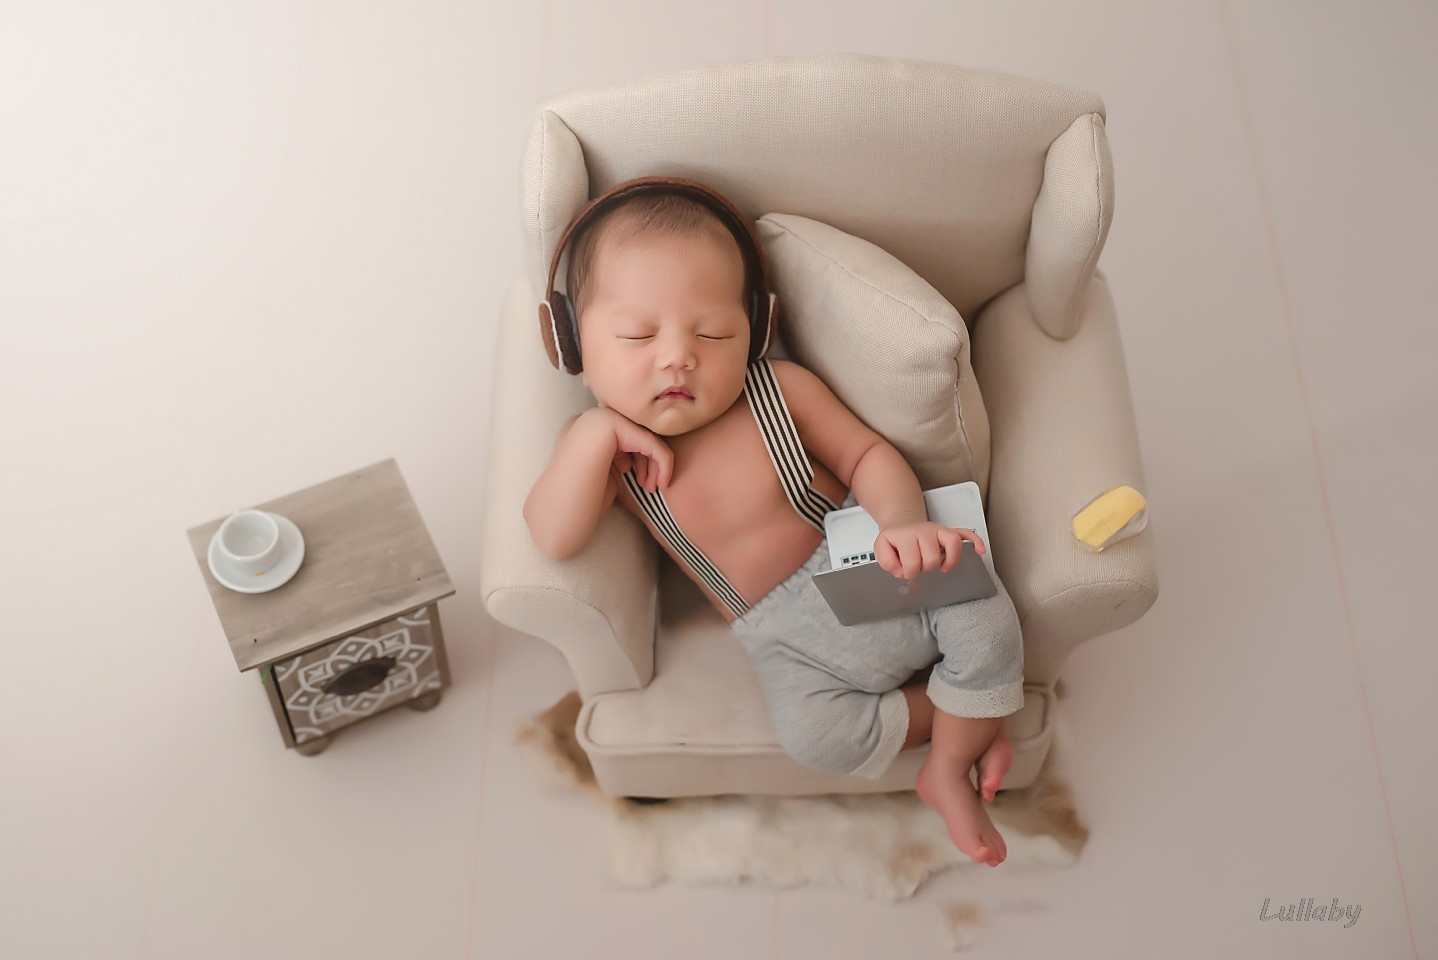 Aby Photography Props Mini Laptop Infant Shoot Accessories Creative Props Baby Photo Shoot Small Props Studio Novel Decorations